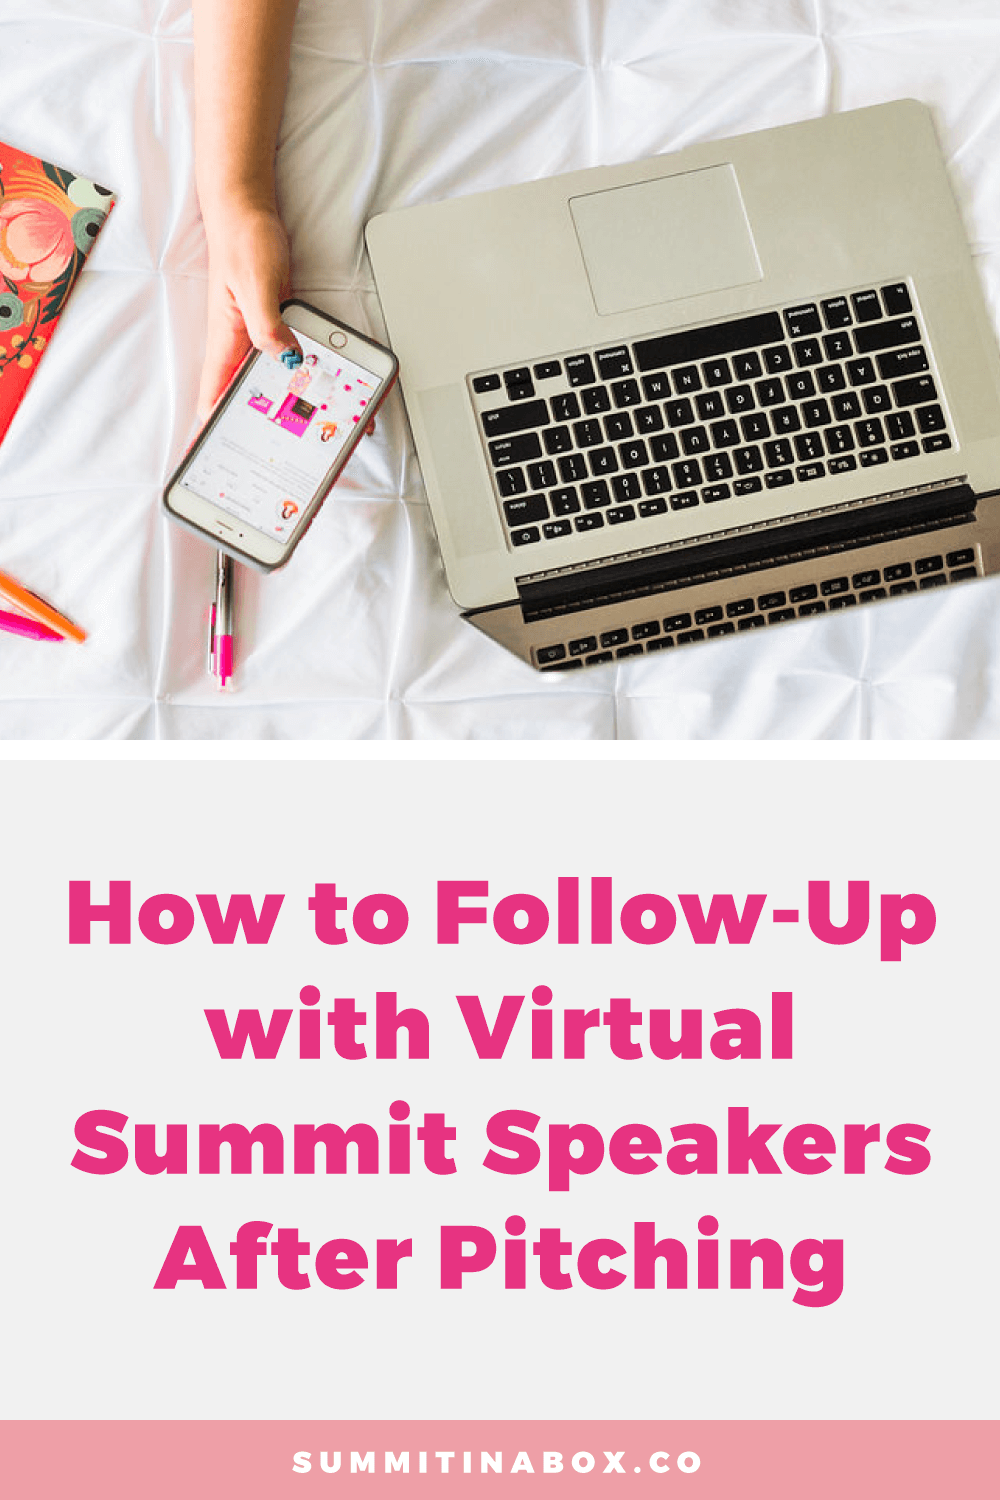 We'll cover whether you should follow-up with virtual summit speakers after pitching, when to do it, and I'll share my no-pressure follow-up strategies.